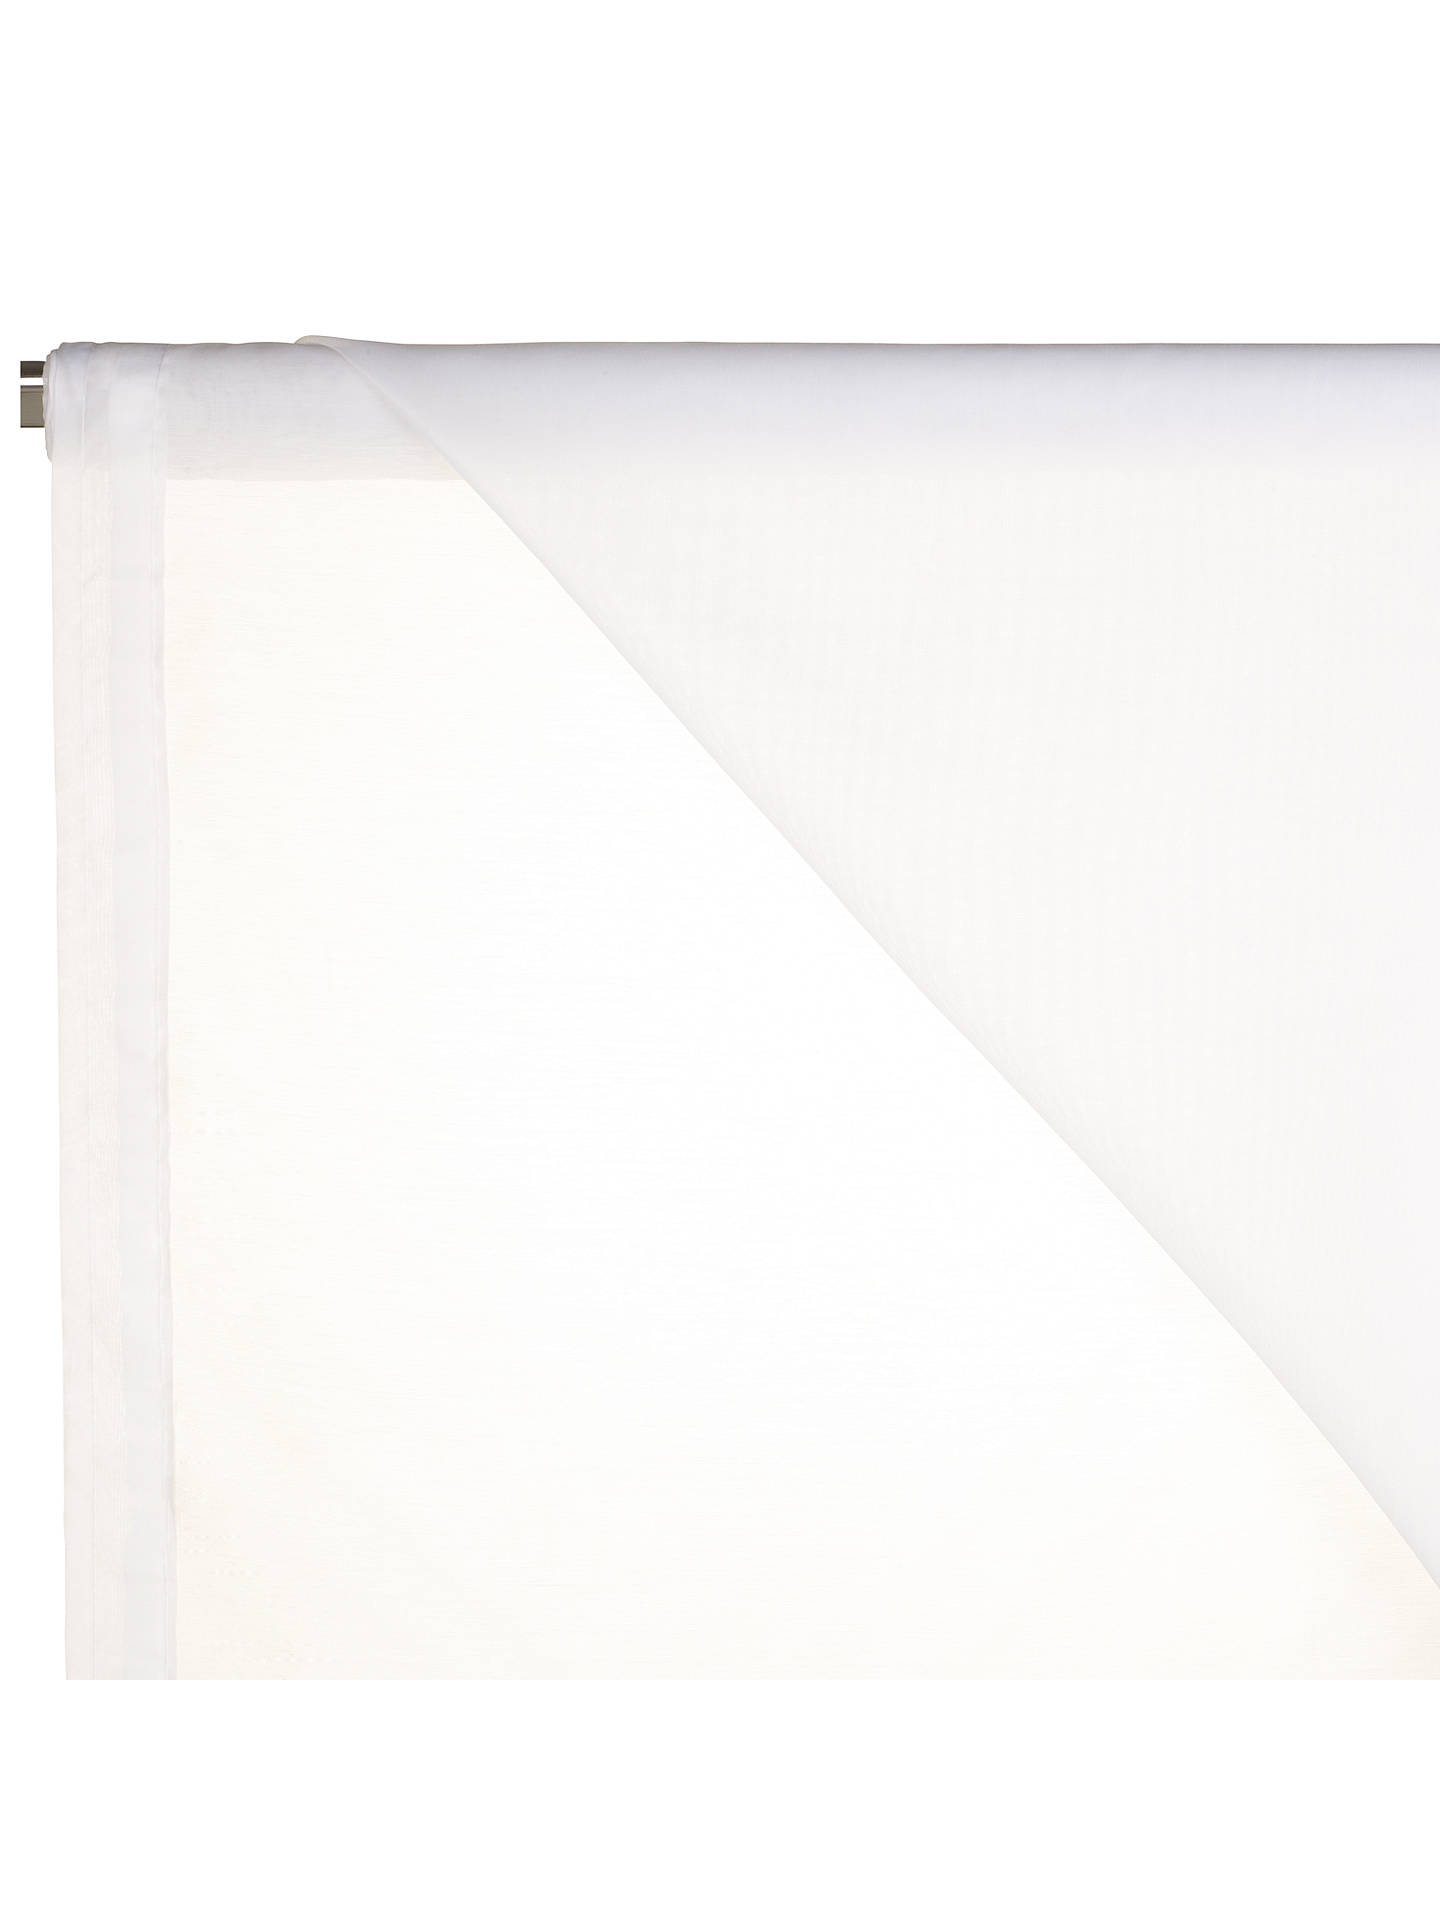 BuyJohn Lewis & Partners Peru Slot Head Voile Fabric, White, Drop 183cm Online at johnlewis.com